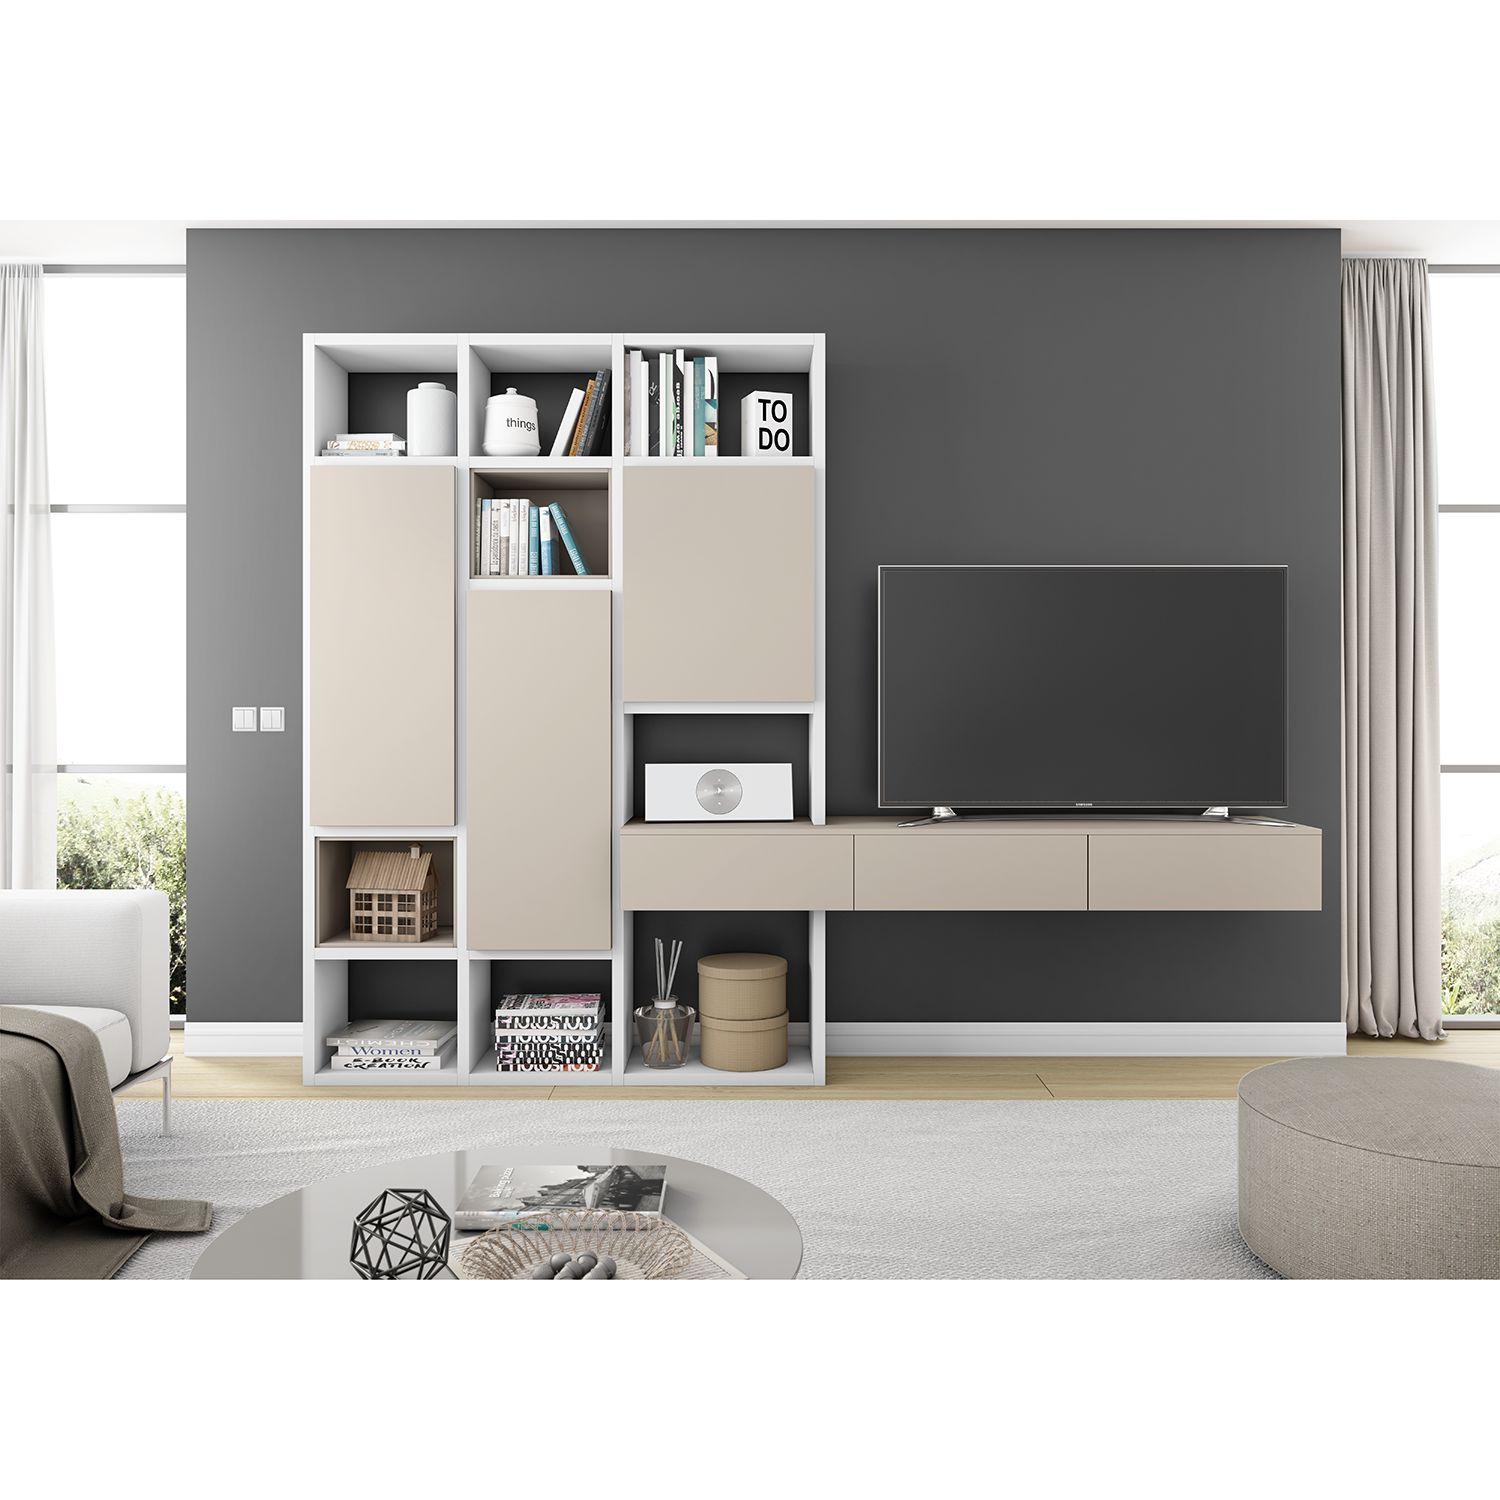 home24 TV-Wand Emporior IV